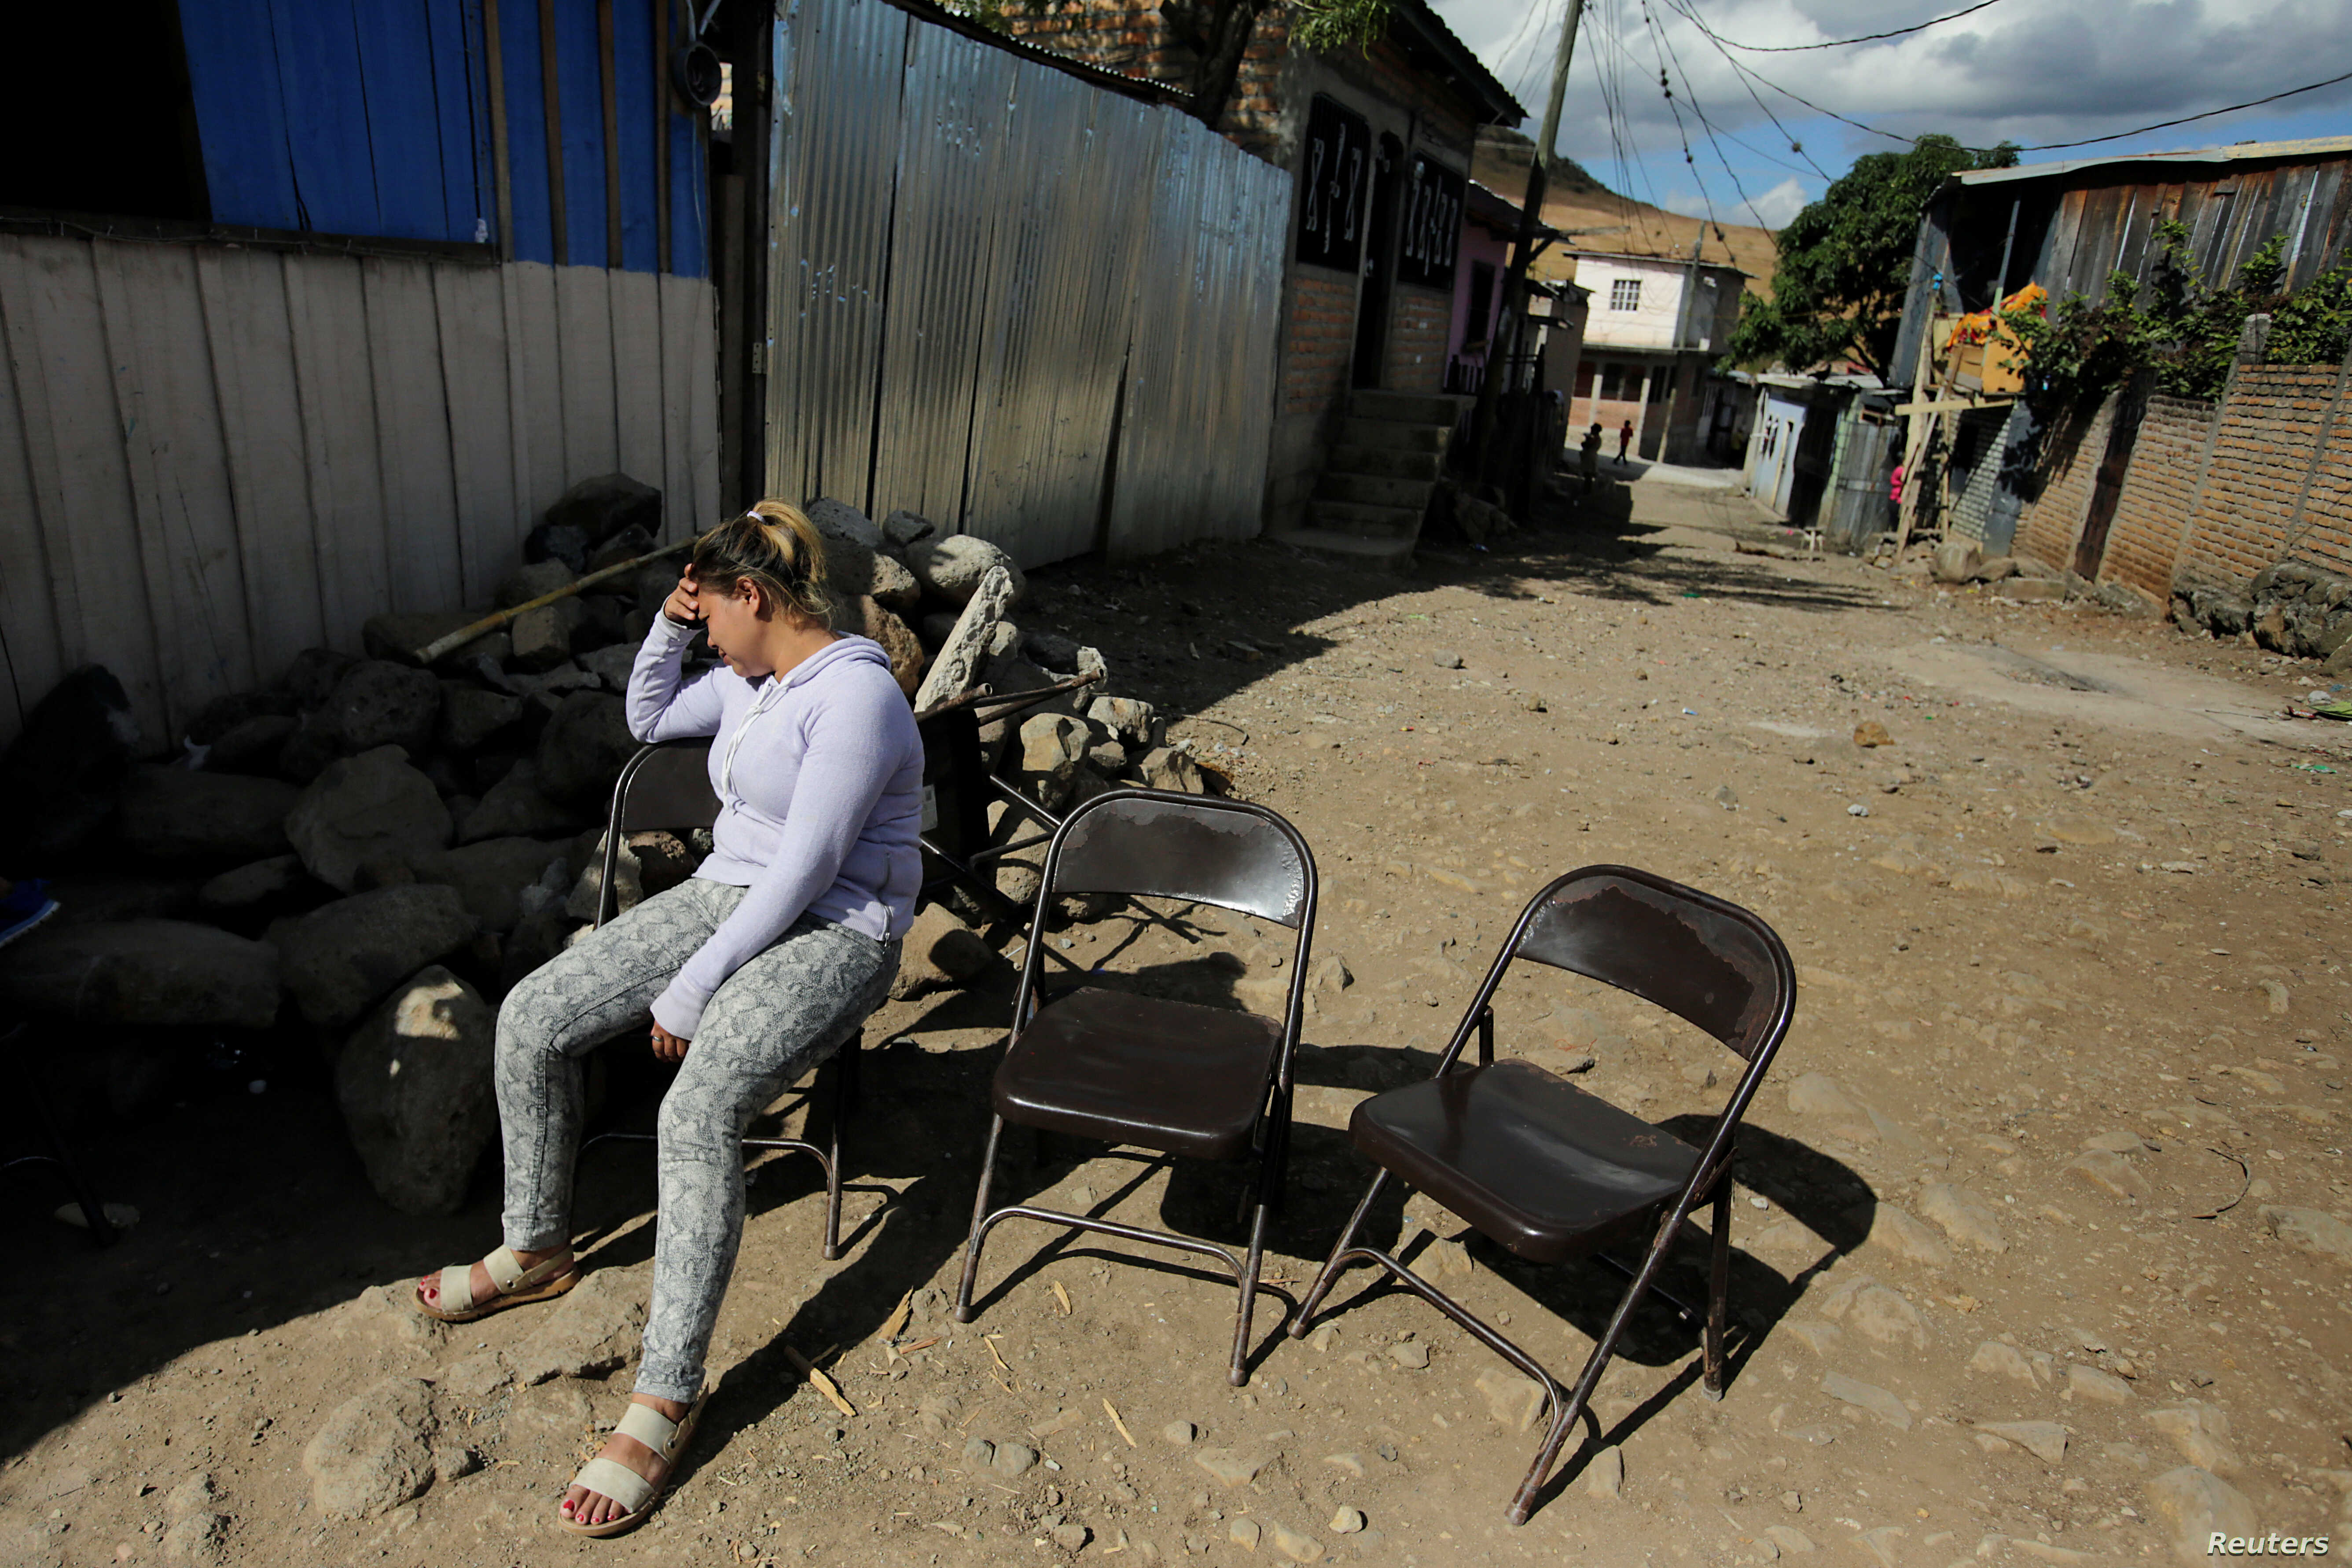 Alicia Espinal reacts during the funeral of her brother Nelson Espinal, 28,  Dec. 19, 2018. who was shot to death the night before shortly after leaving his home in Tegucigalpa, Honduras.